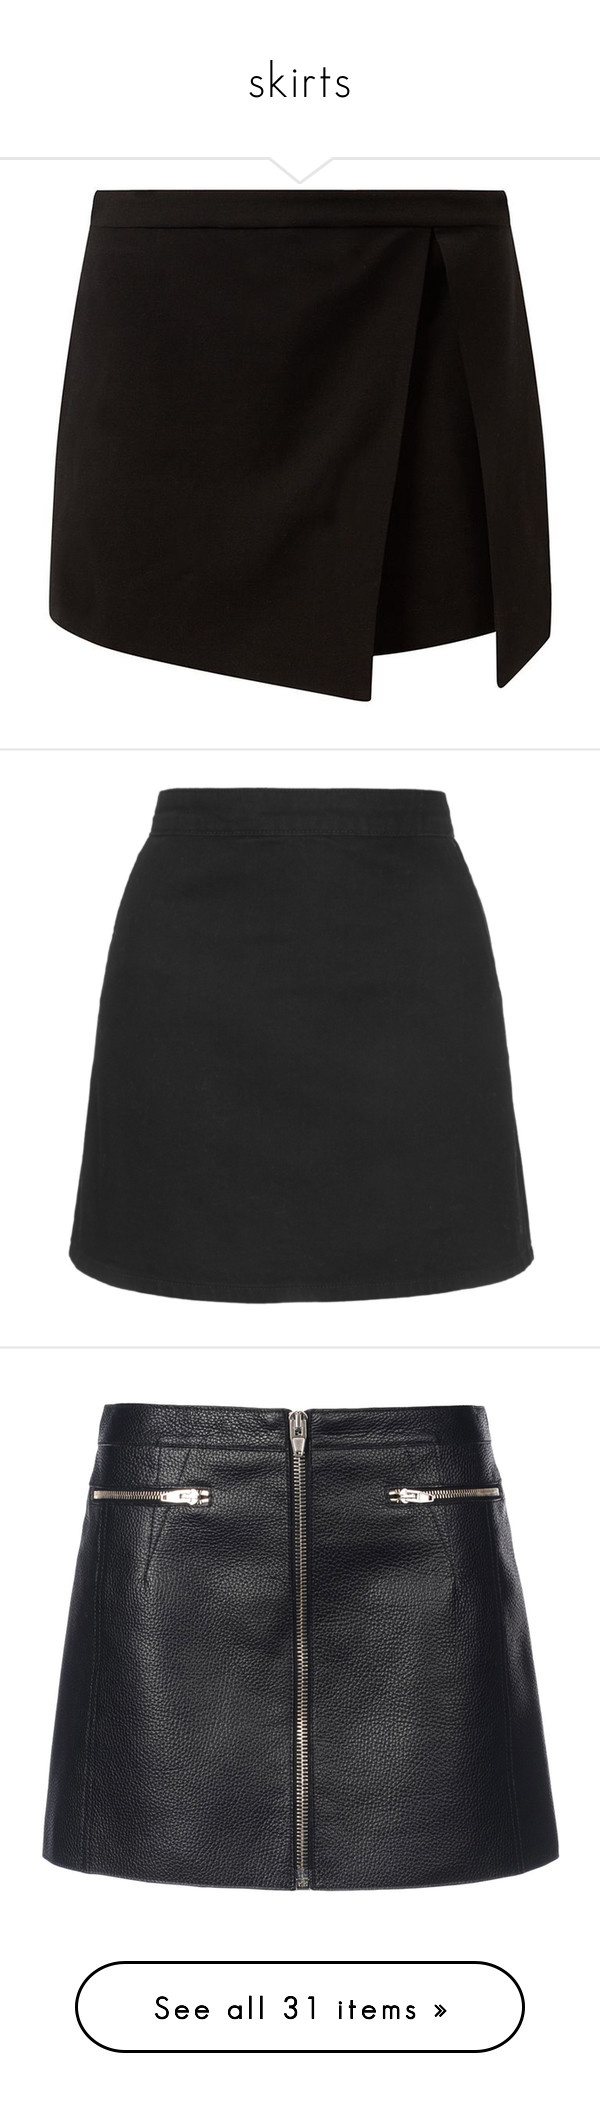 """skirts"" by lilhendrick ❤ liked on Polyvore featuring skirts, mini skirts, bottoms, skorts, shorts, skort skirt, jersey mini skirt, jersey skirt, mini skirt and slim skirt"